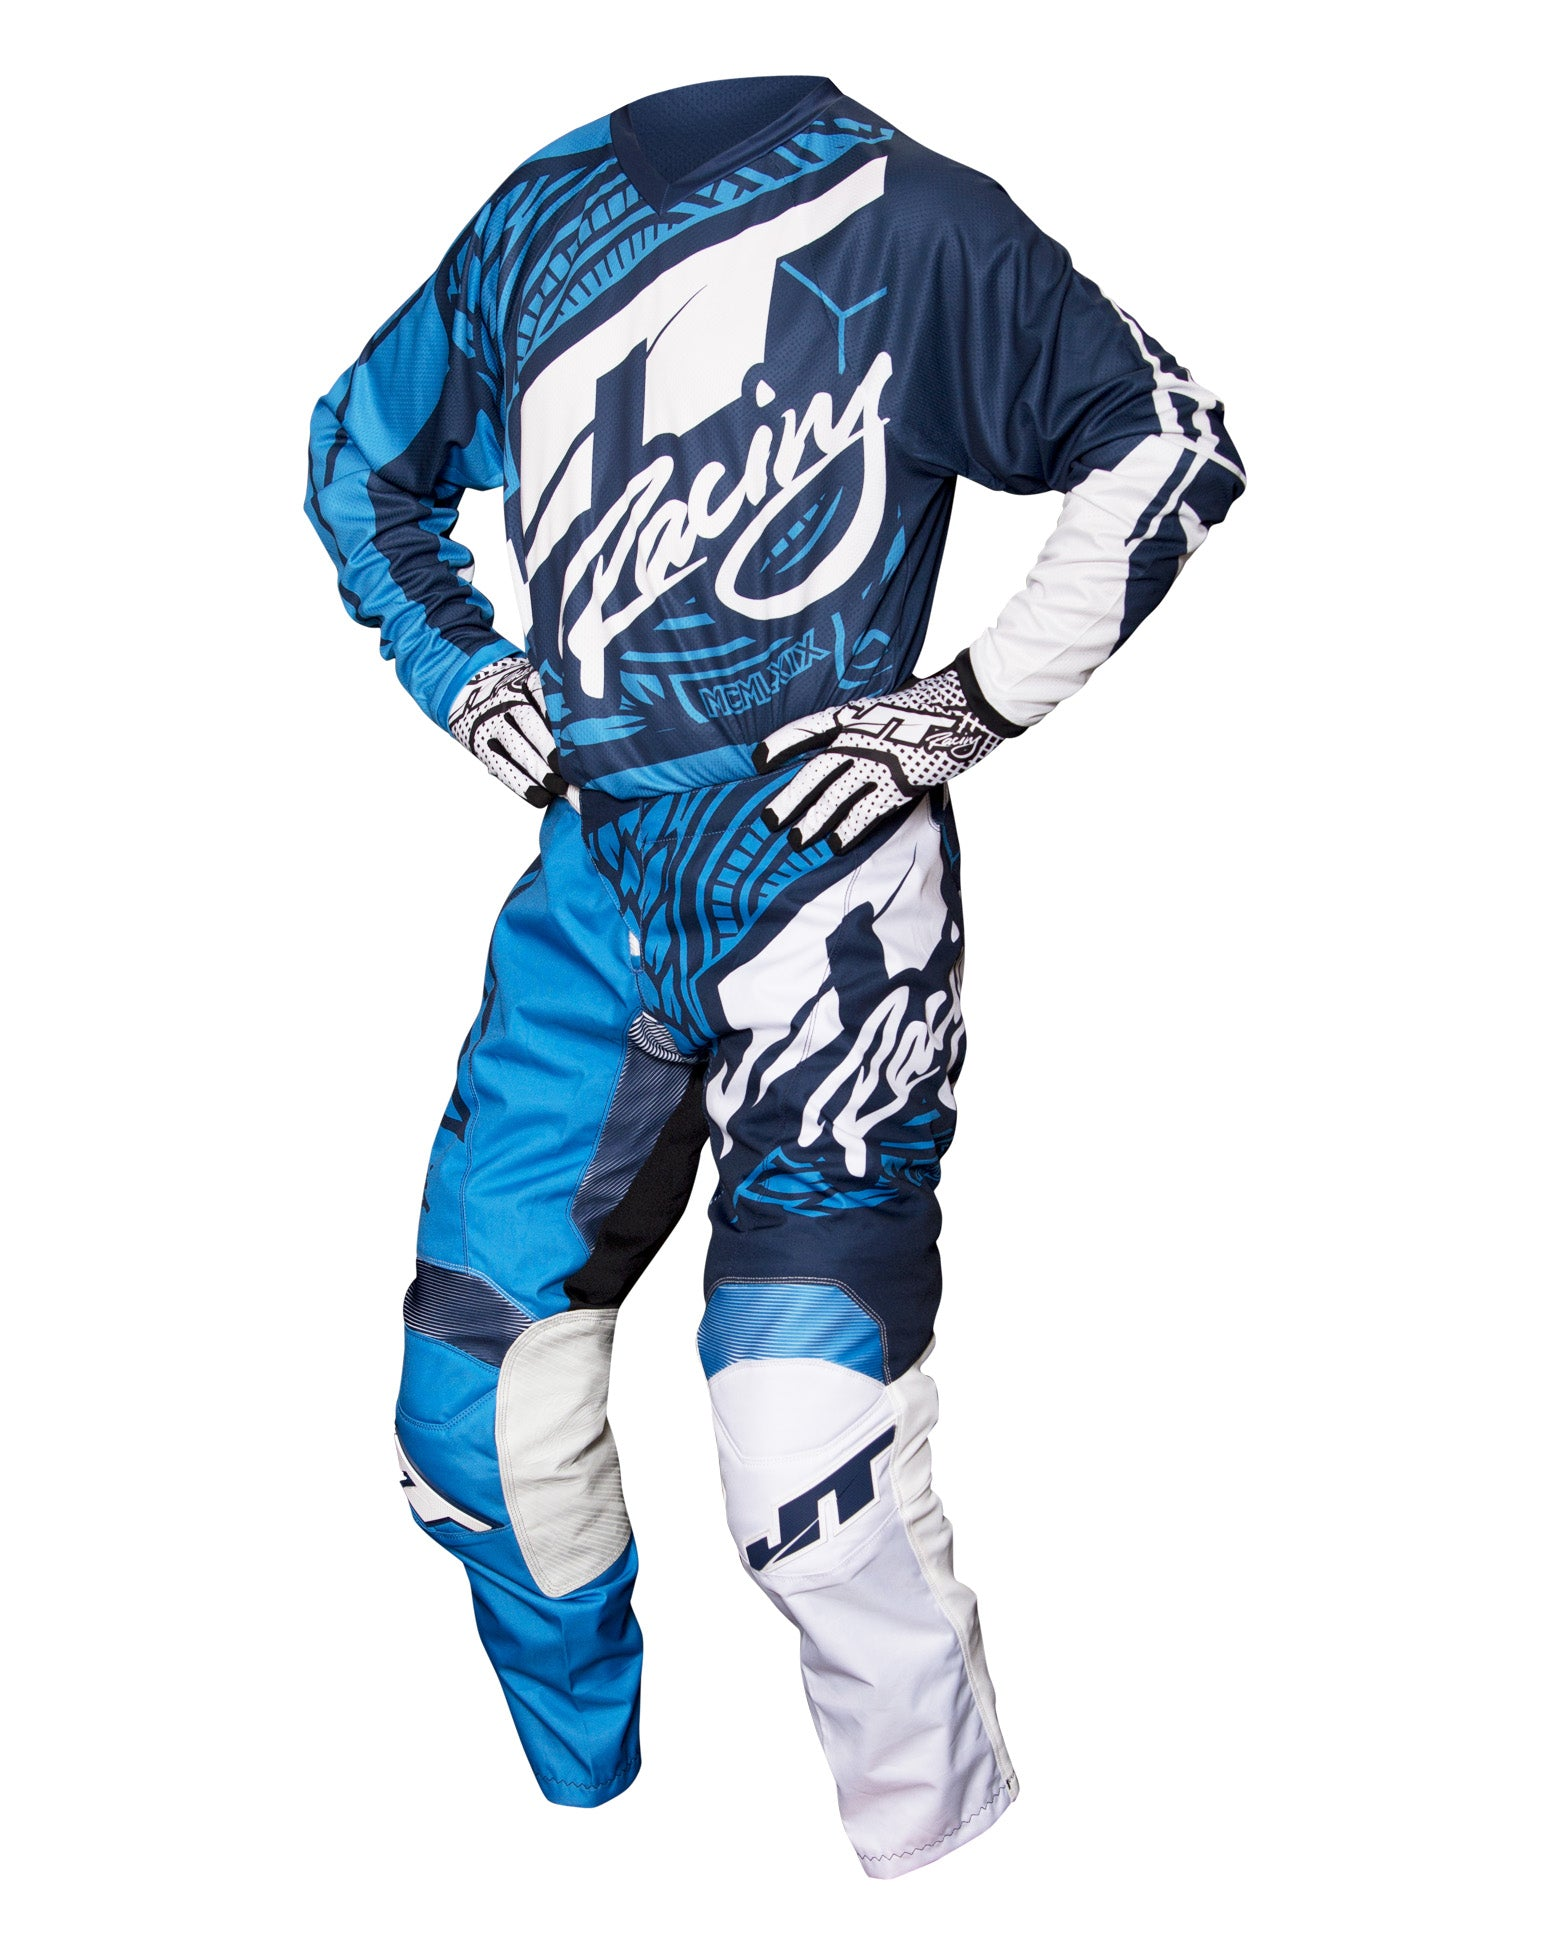 JT RACING USA Flex-Victory Pants, Navy/Cyan